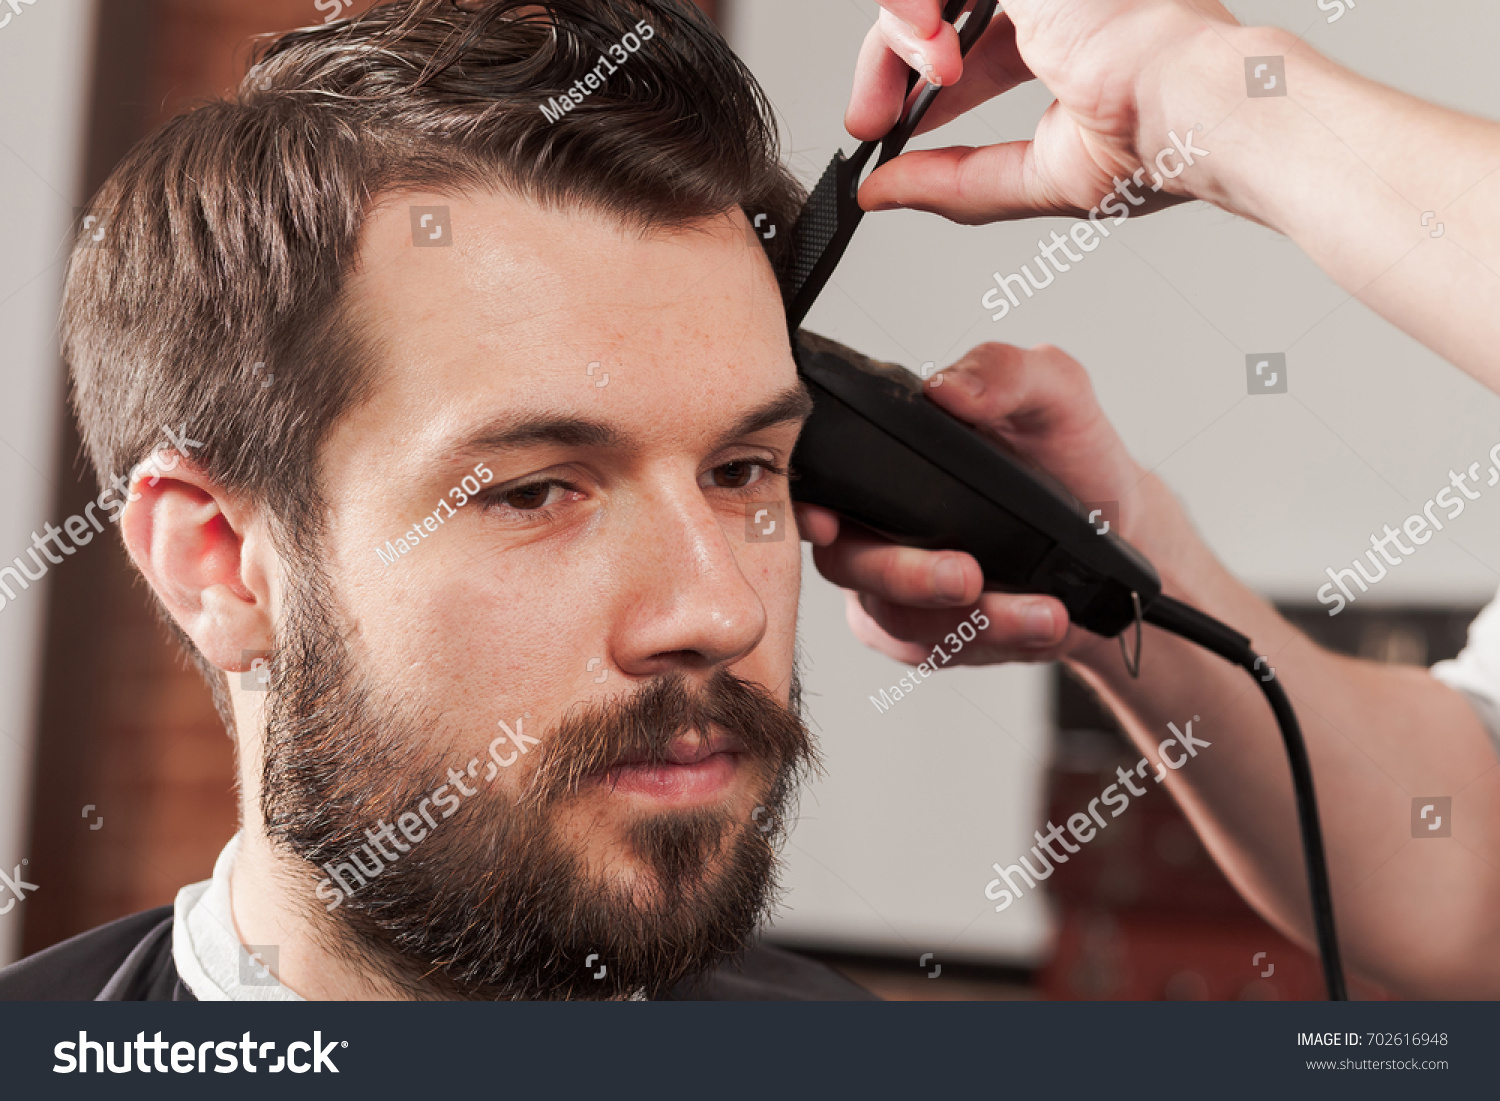 The Hands Of Barber Making Haircut To Young Man In Barbershop Ez